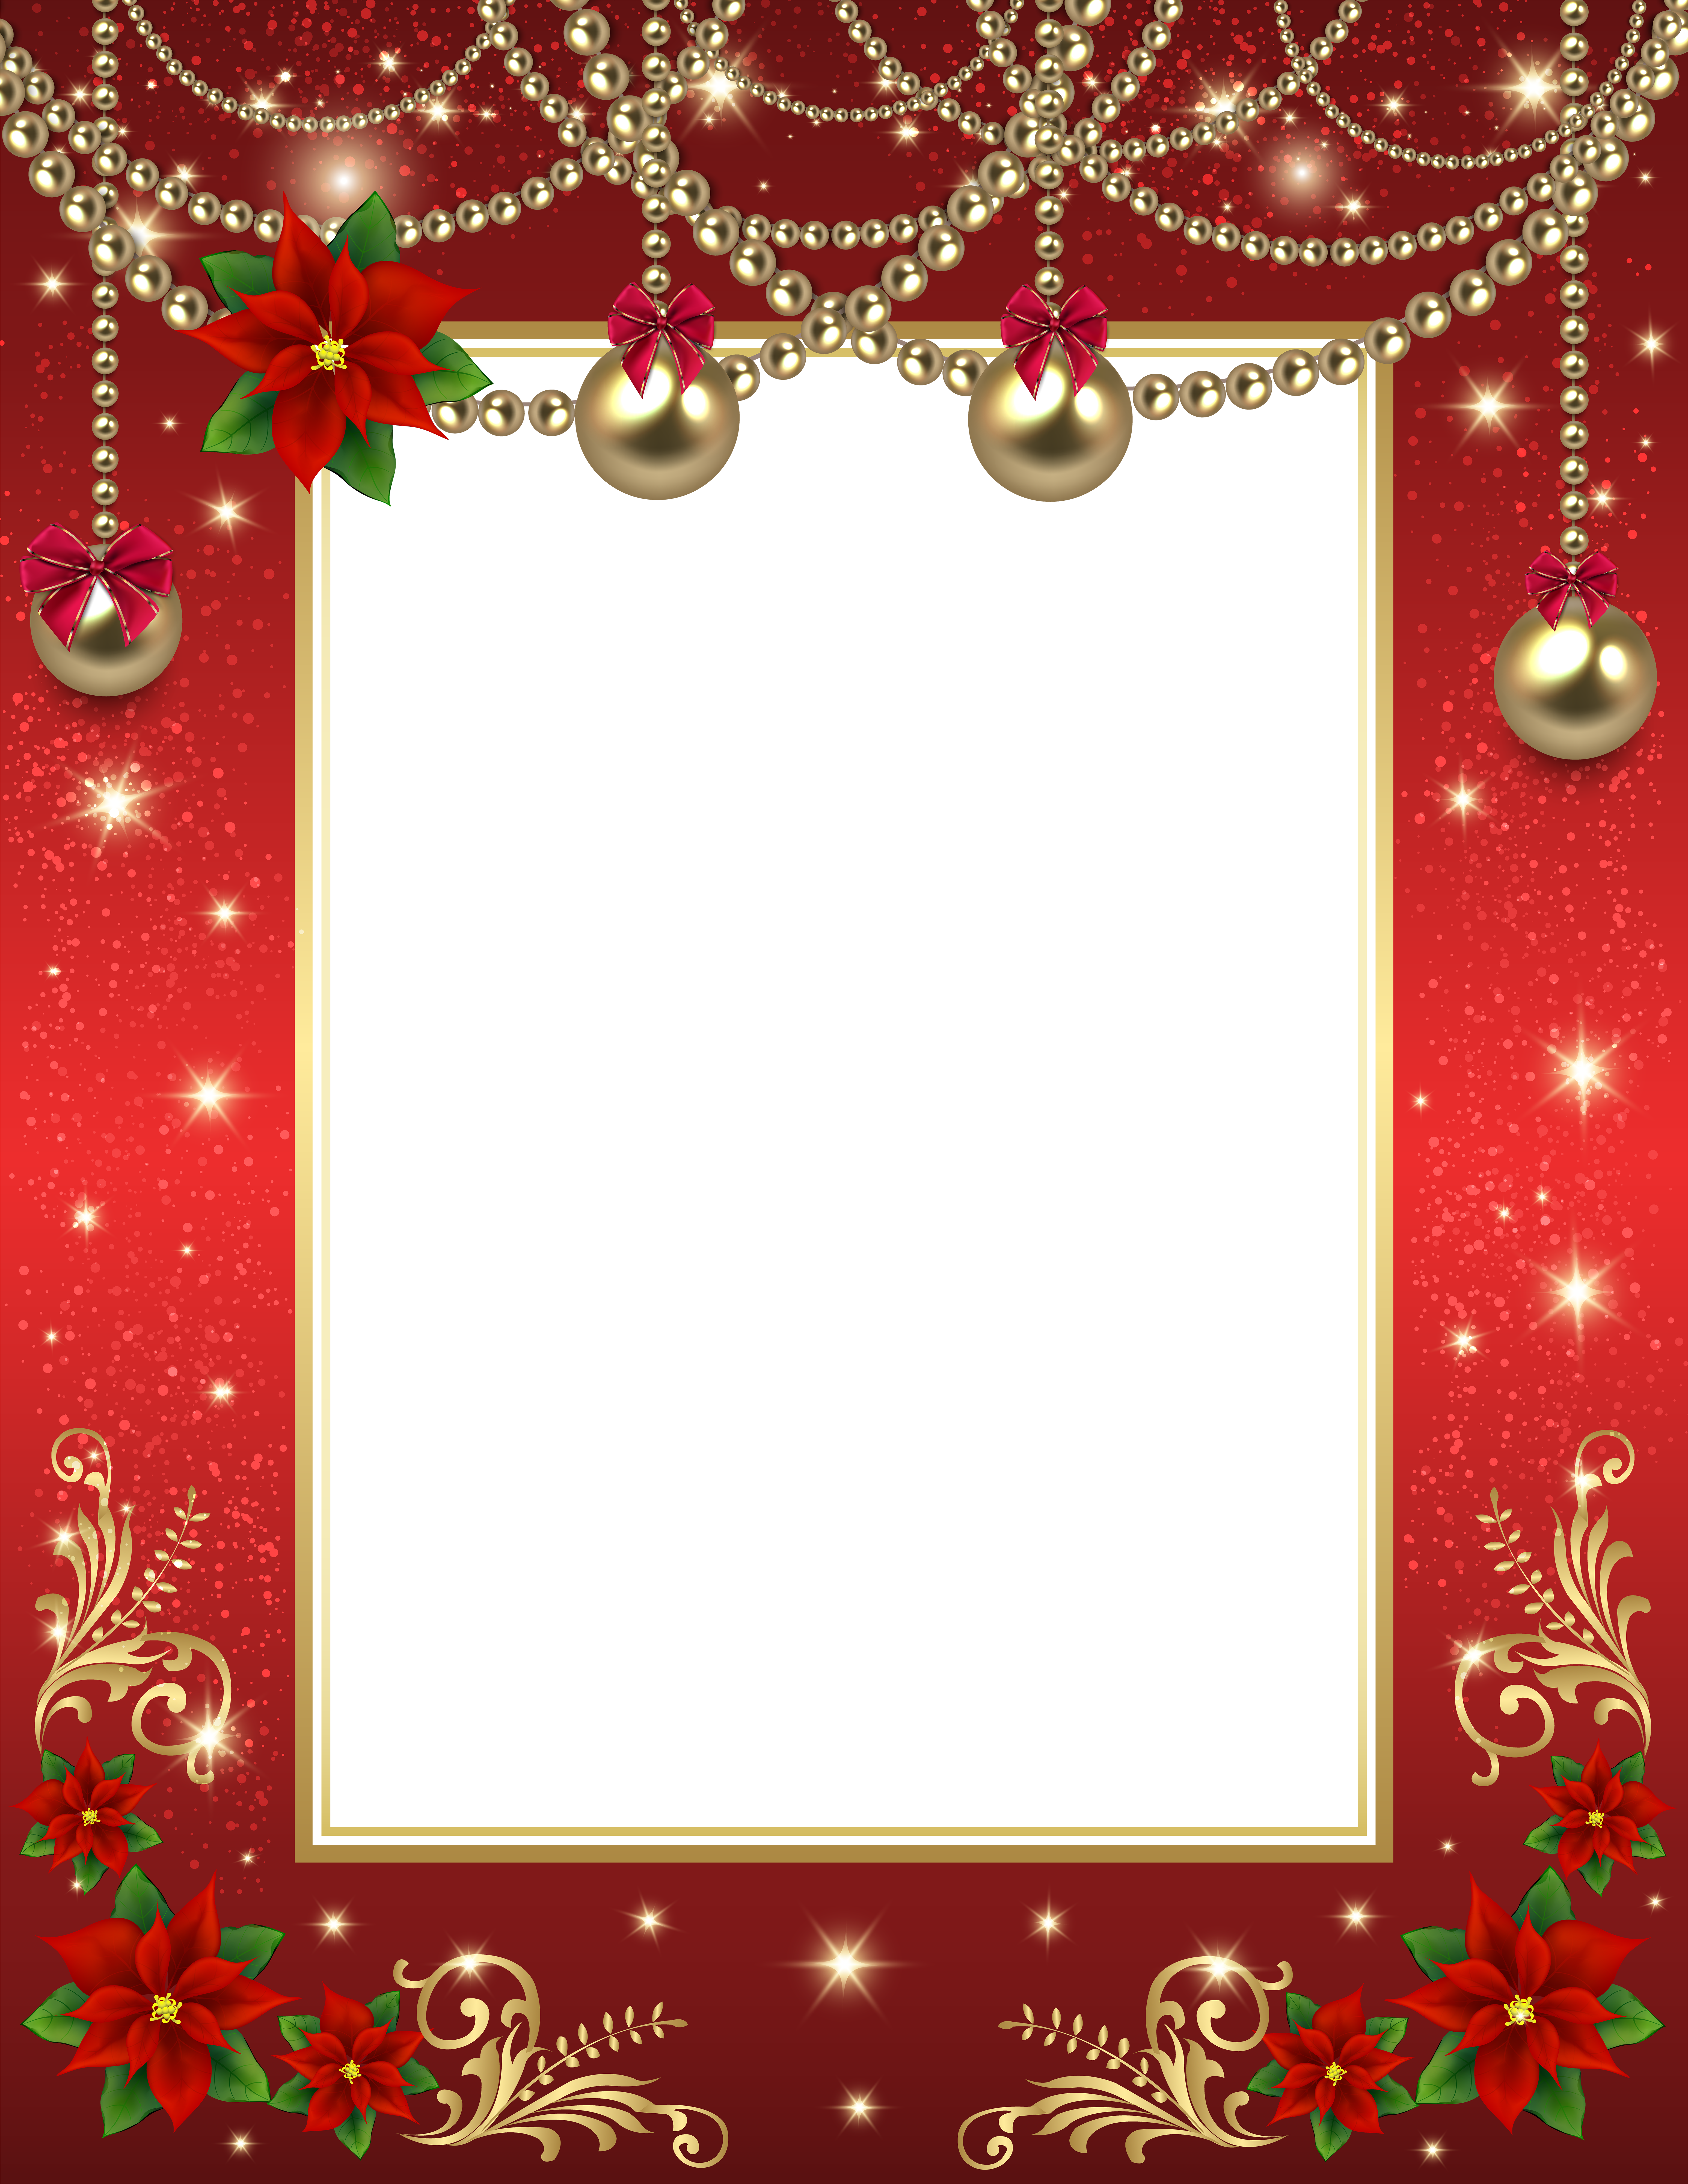 Transparent png photo frame. Christmas borders .png vector transparent download